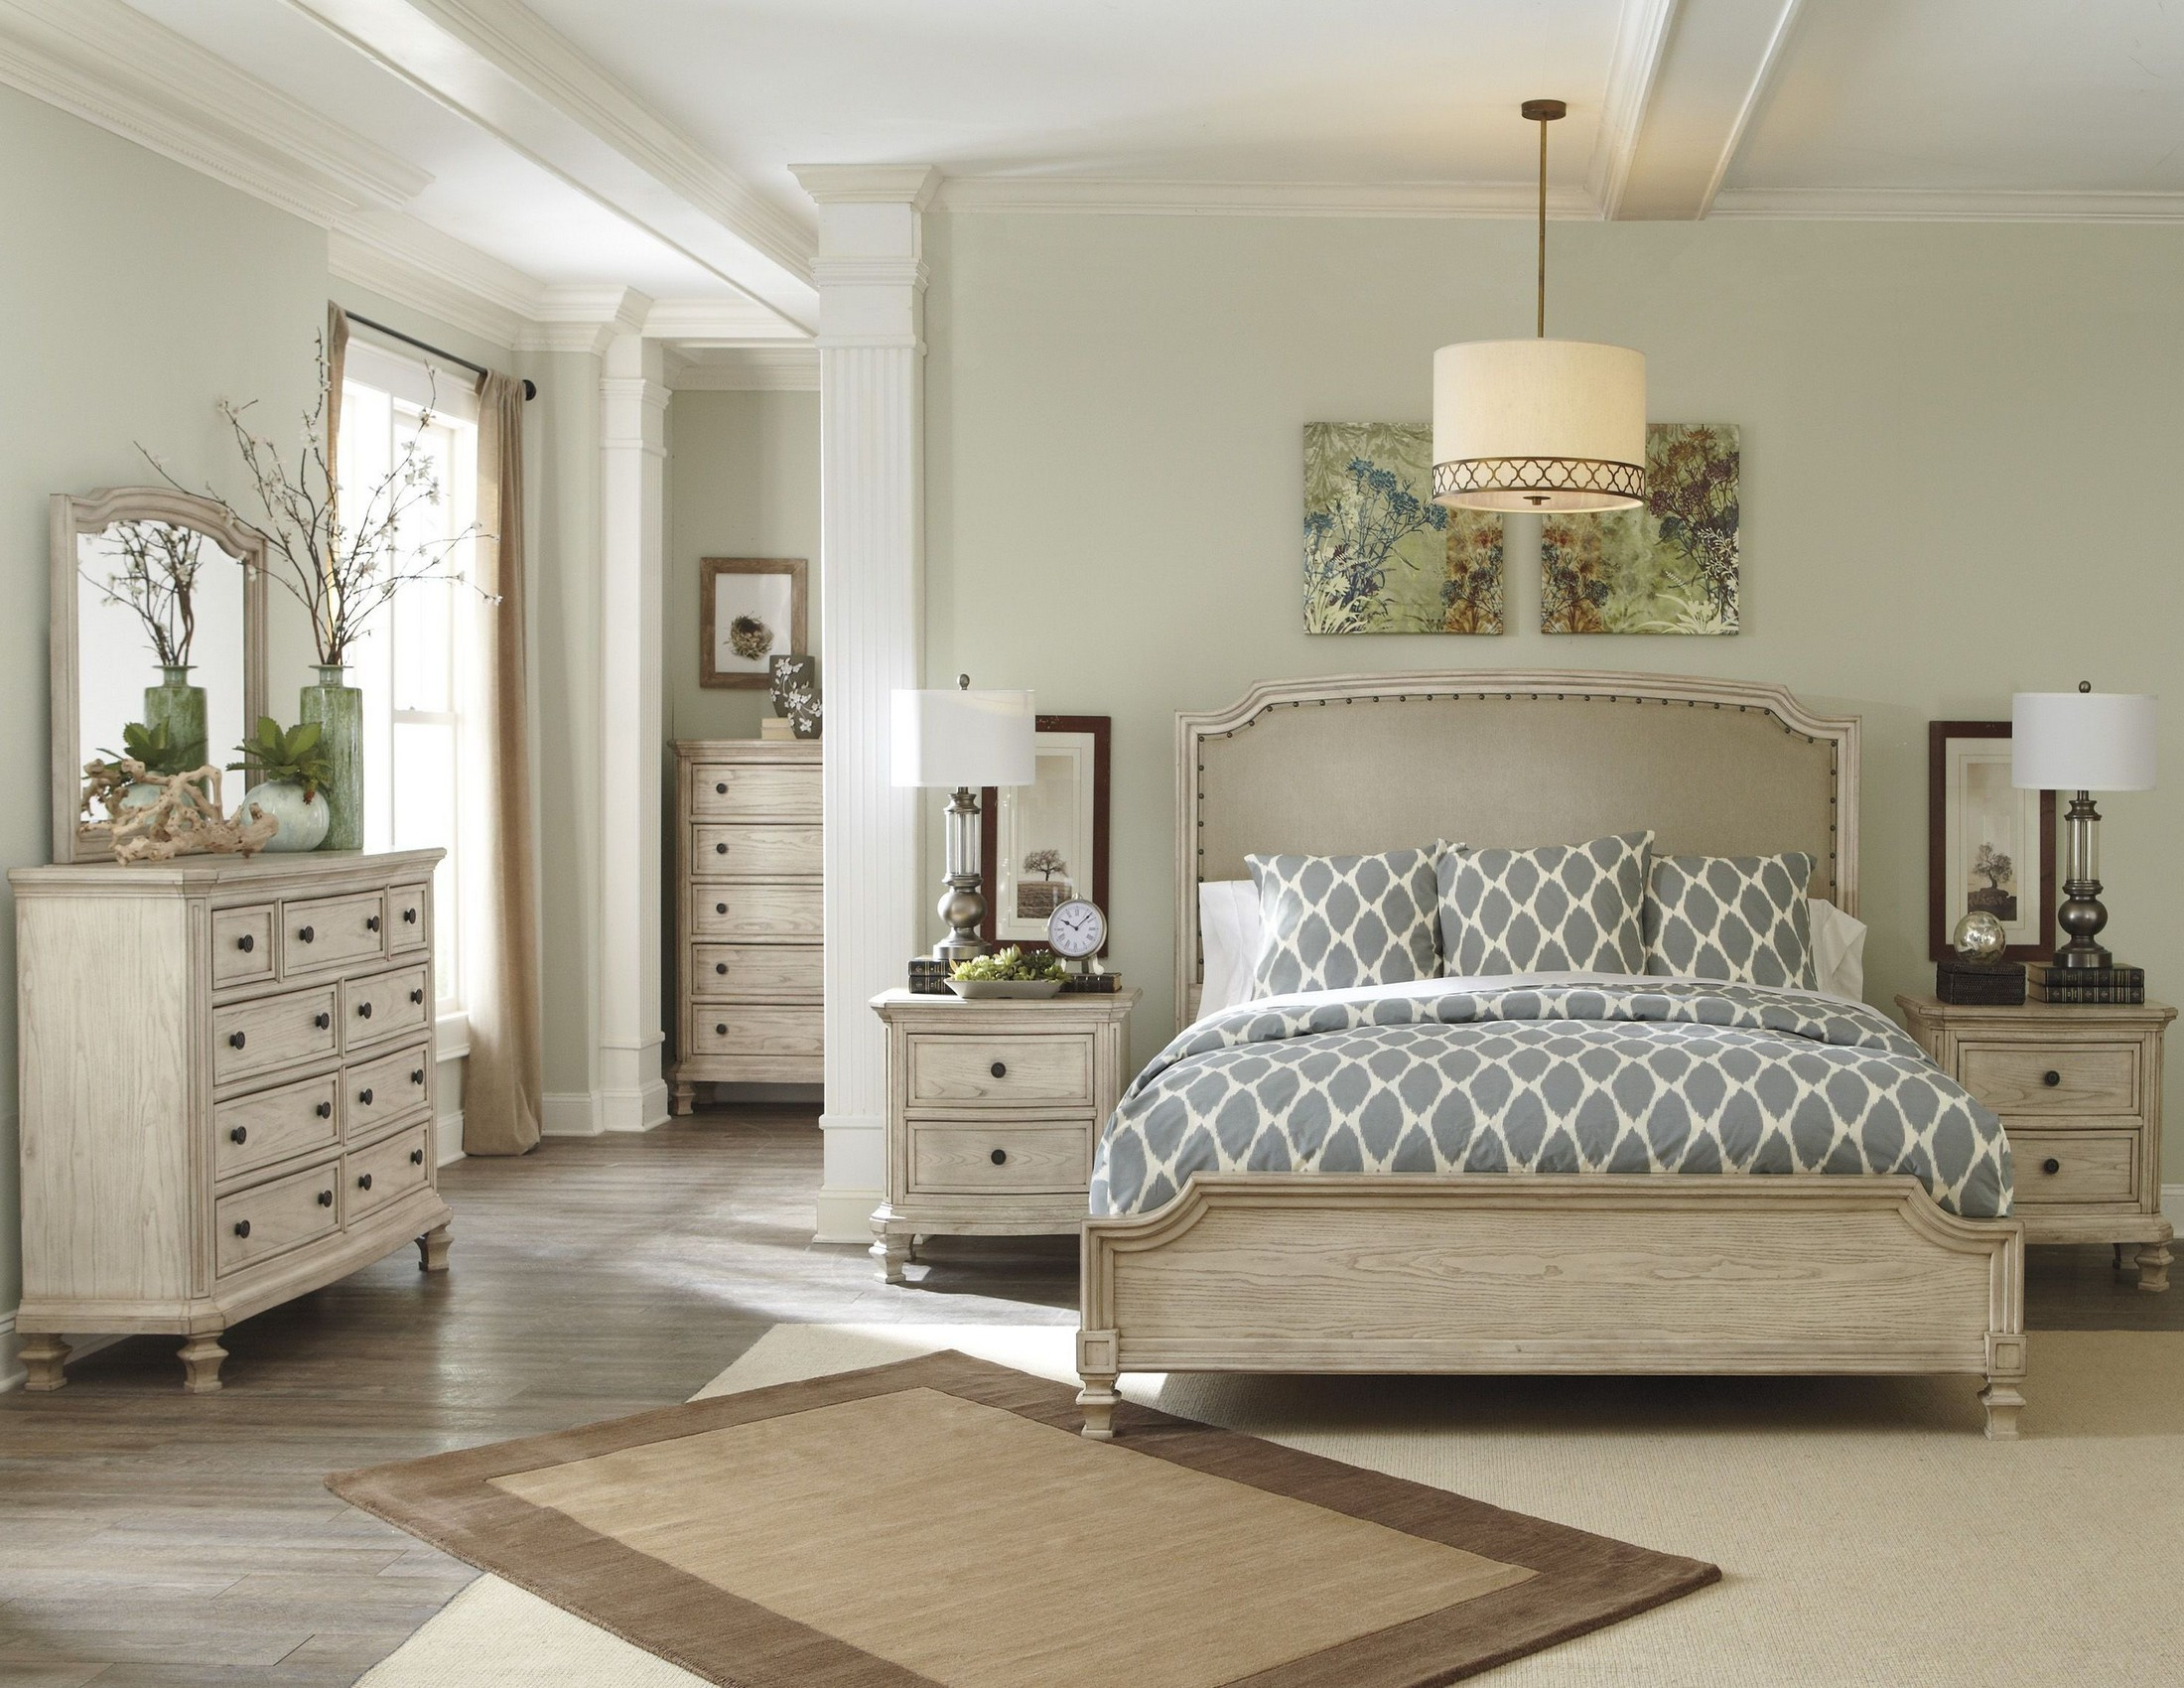 demarlos upholstered panel bedroom set from ashley b693 77 74 96 coleman furniture ForDemarlos Upholstered Panel Bedroom Set